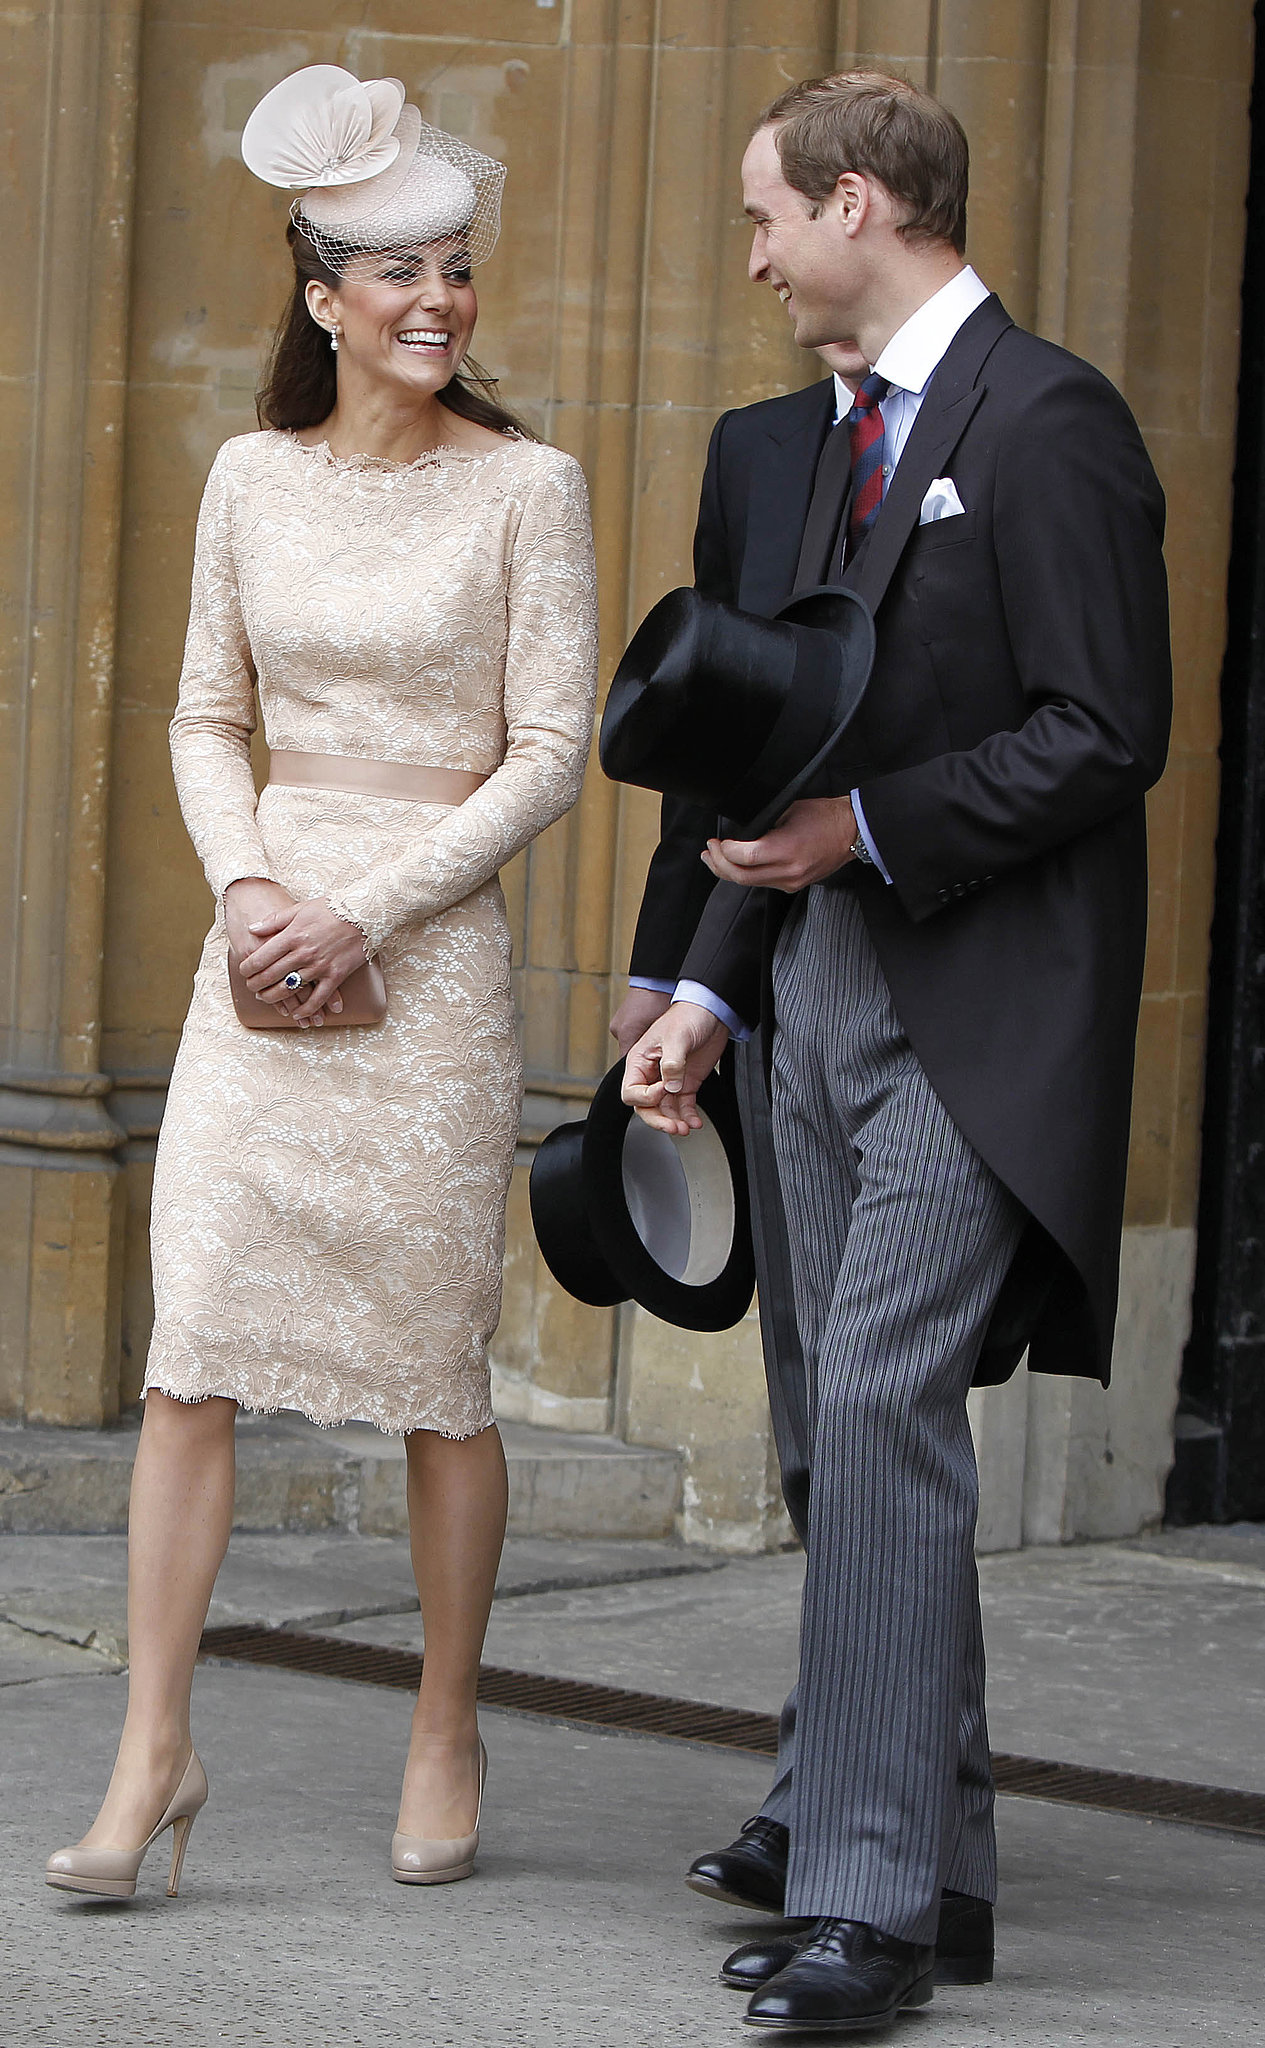 The Royal Couple at the Diamond Jubilee Luncheon